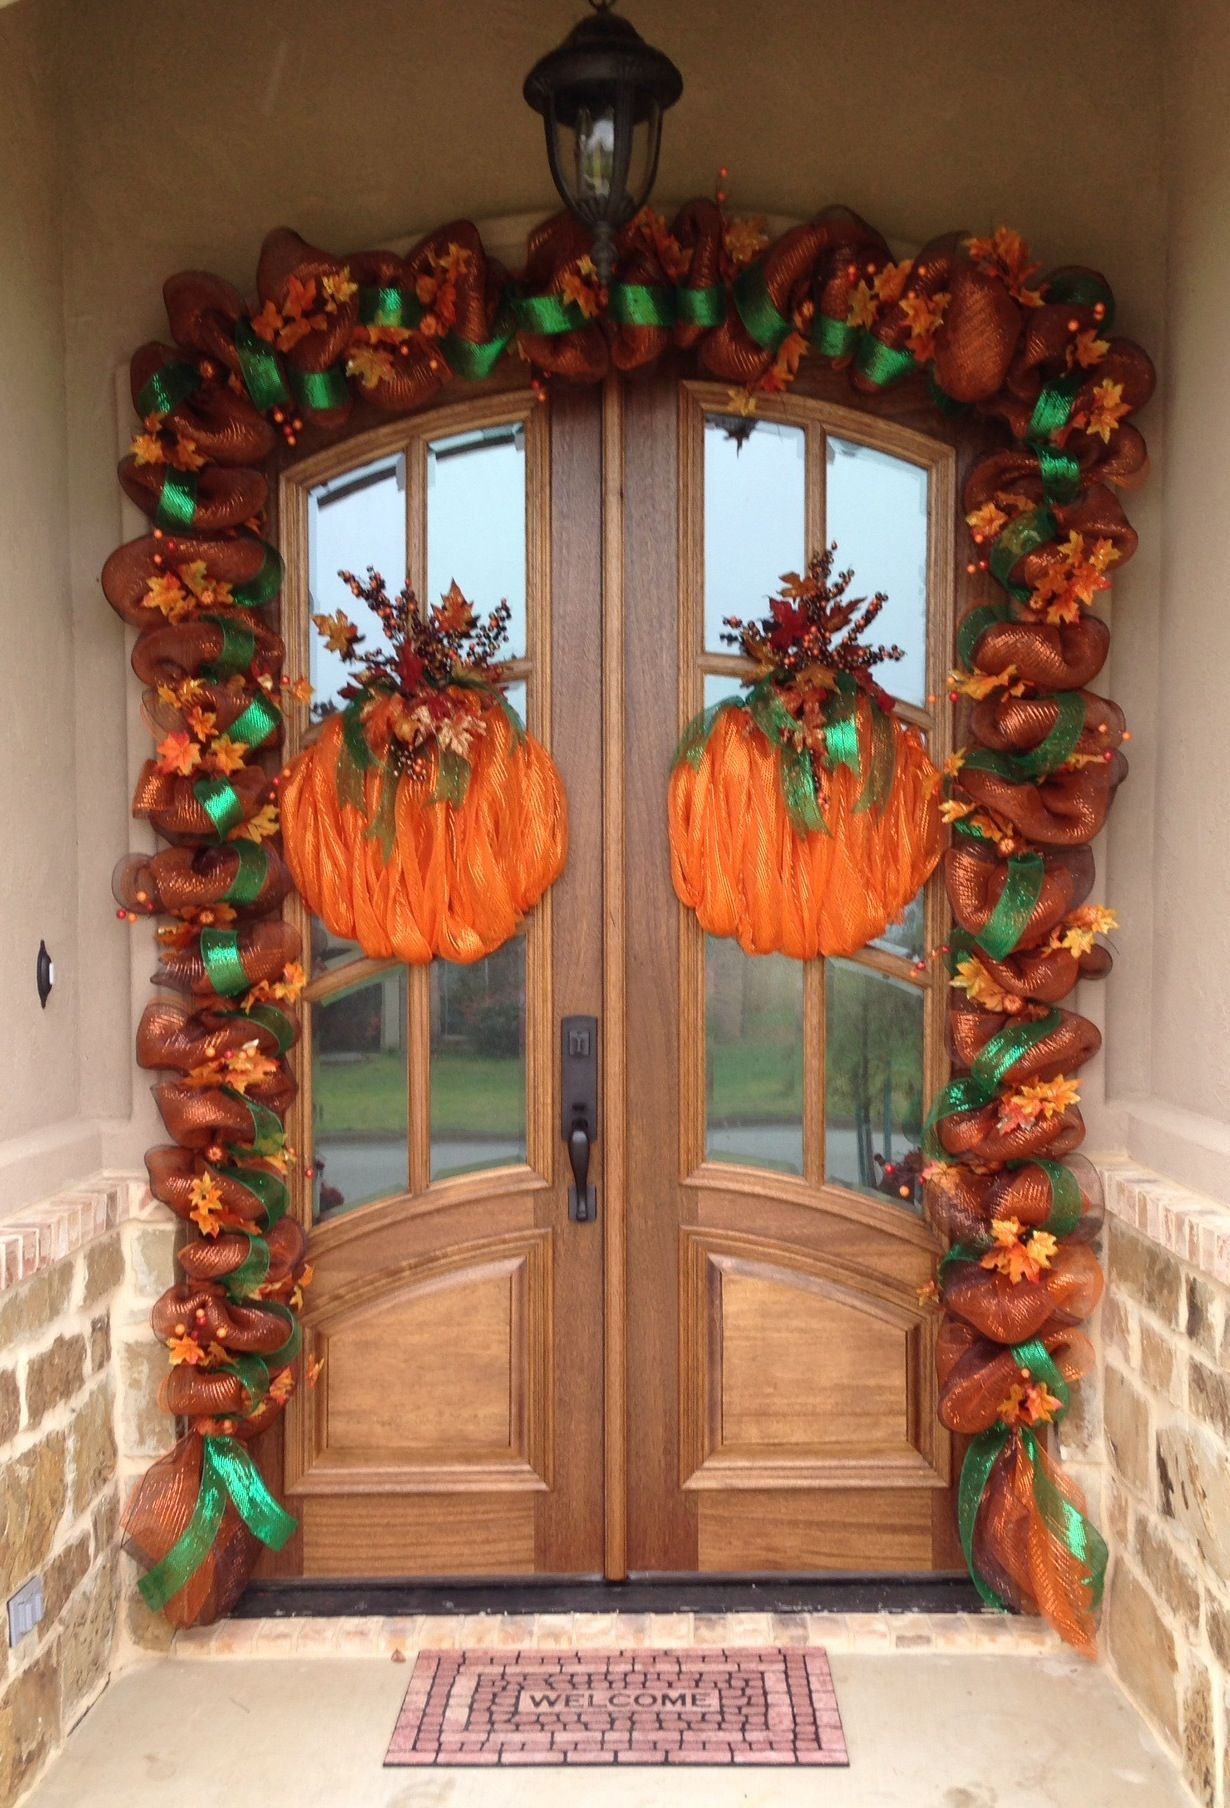 Pin By Jean Lucas On Crafts Fall Deco Fall Decorations Porch Fall Decor Diy